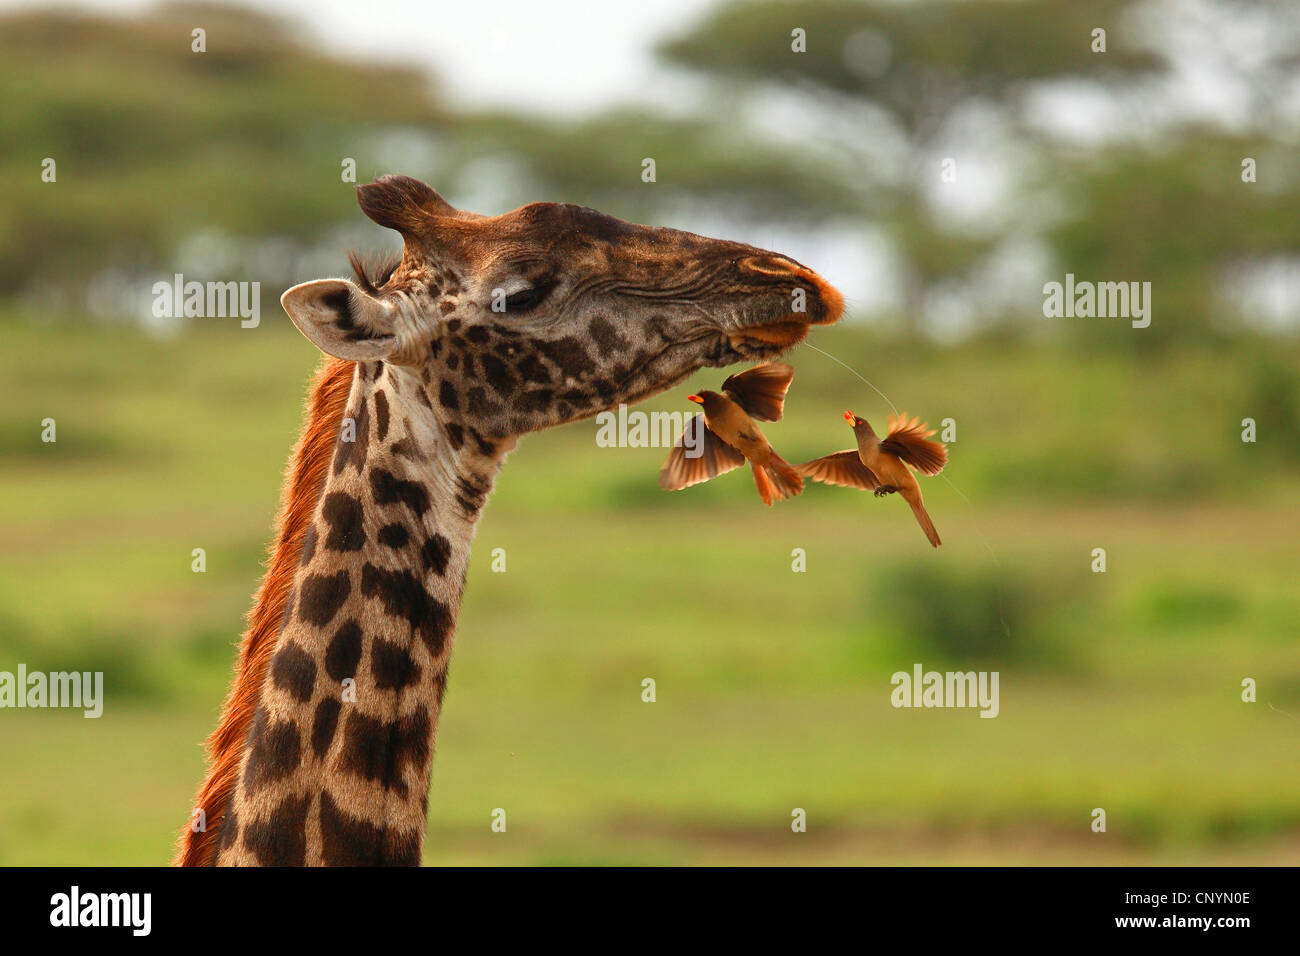 Girafe (Giraffa camelopardalis), red-billed oxpecker manger d'autres insectes, la Tanzanie, la Ngorongoro Conservation Photo Stock